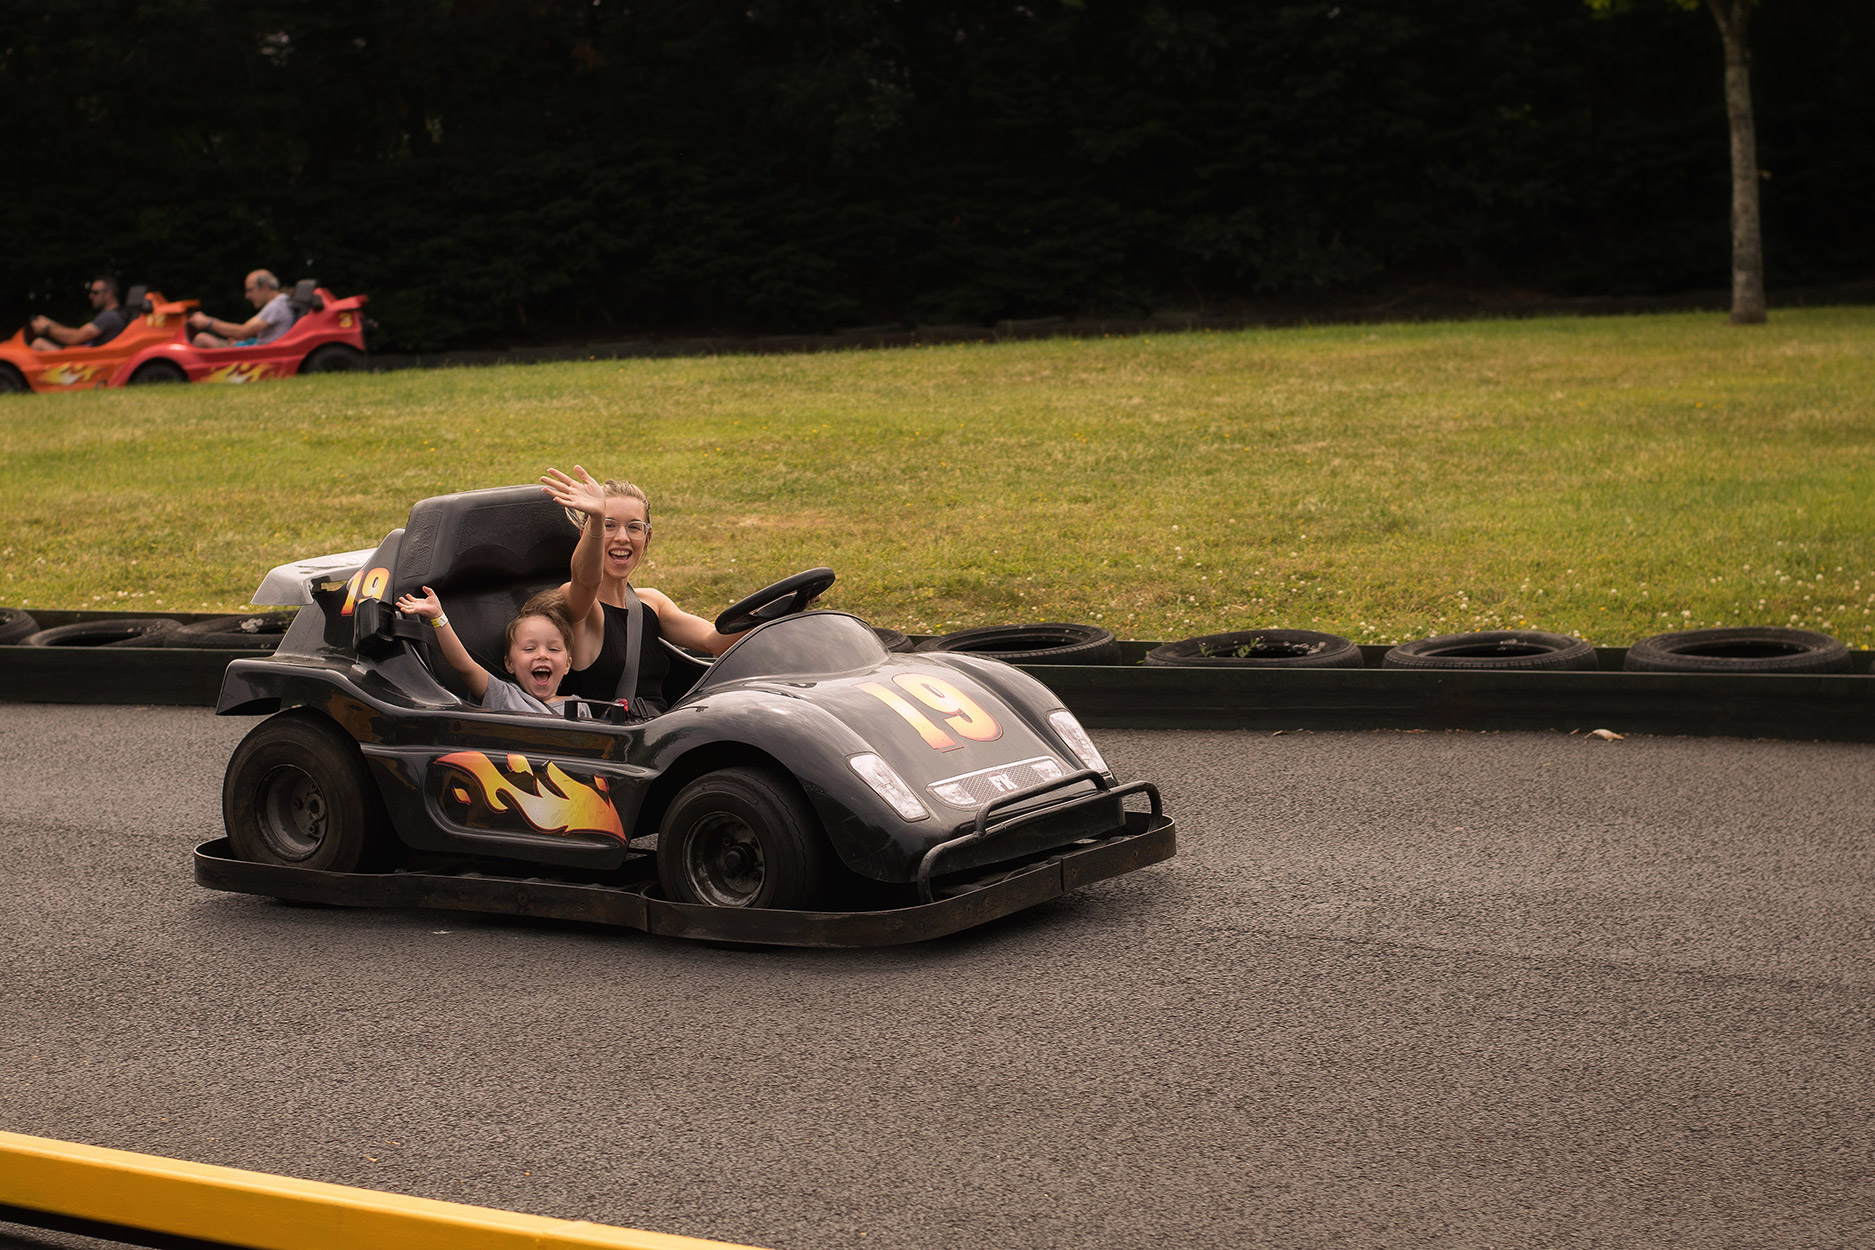 Mother and son in the go-karts at at Folly Farm, Wales